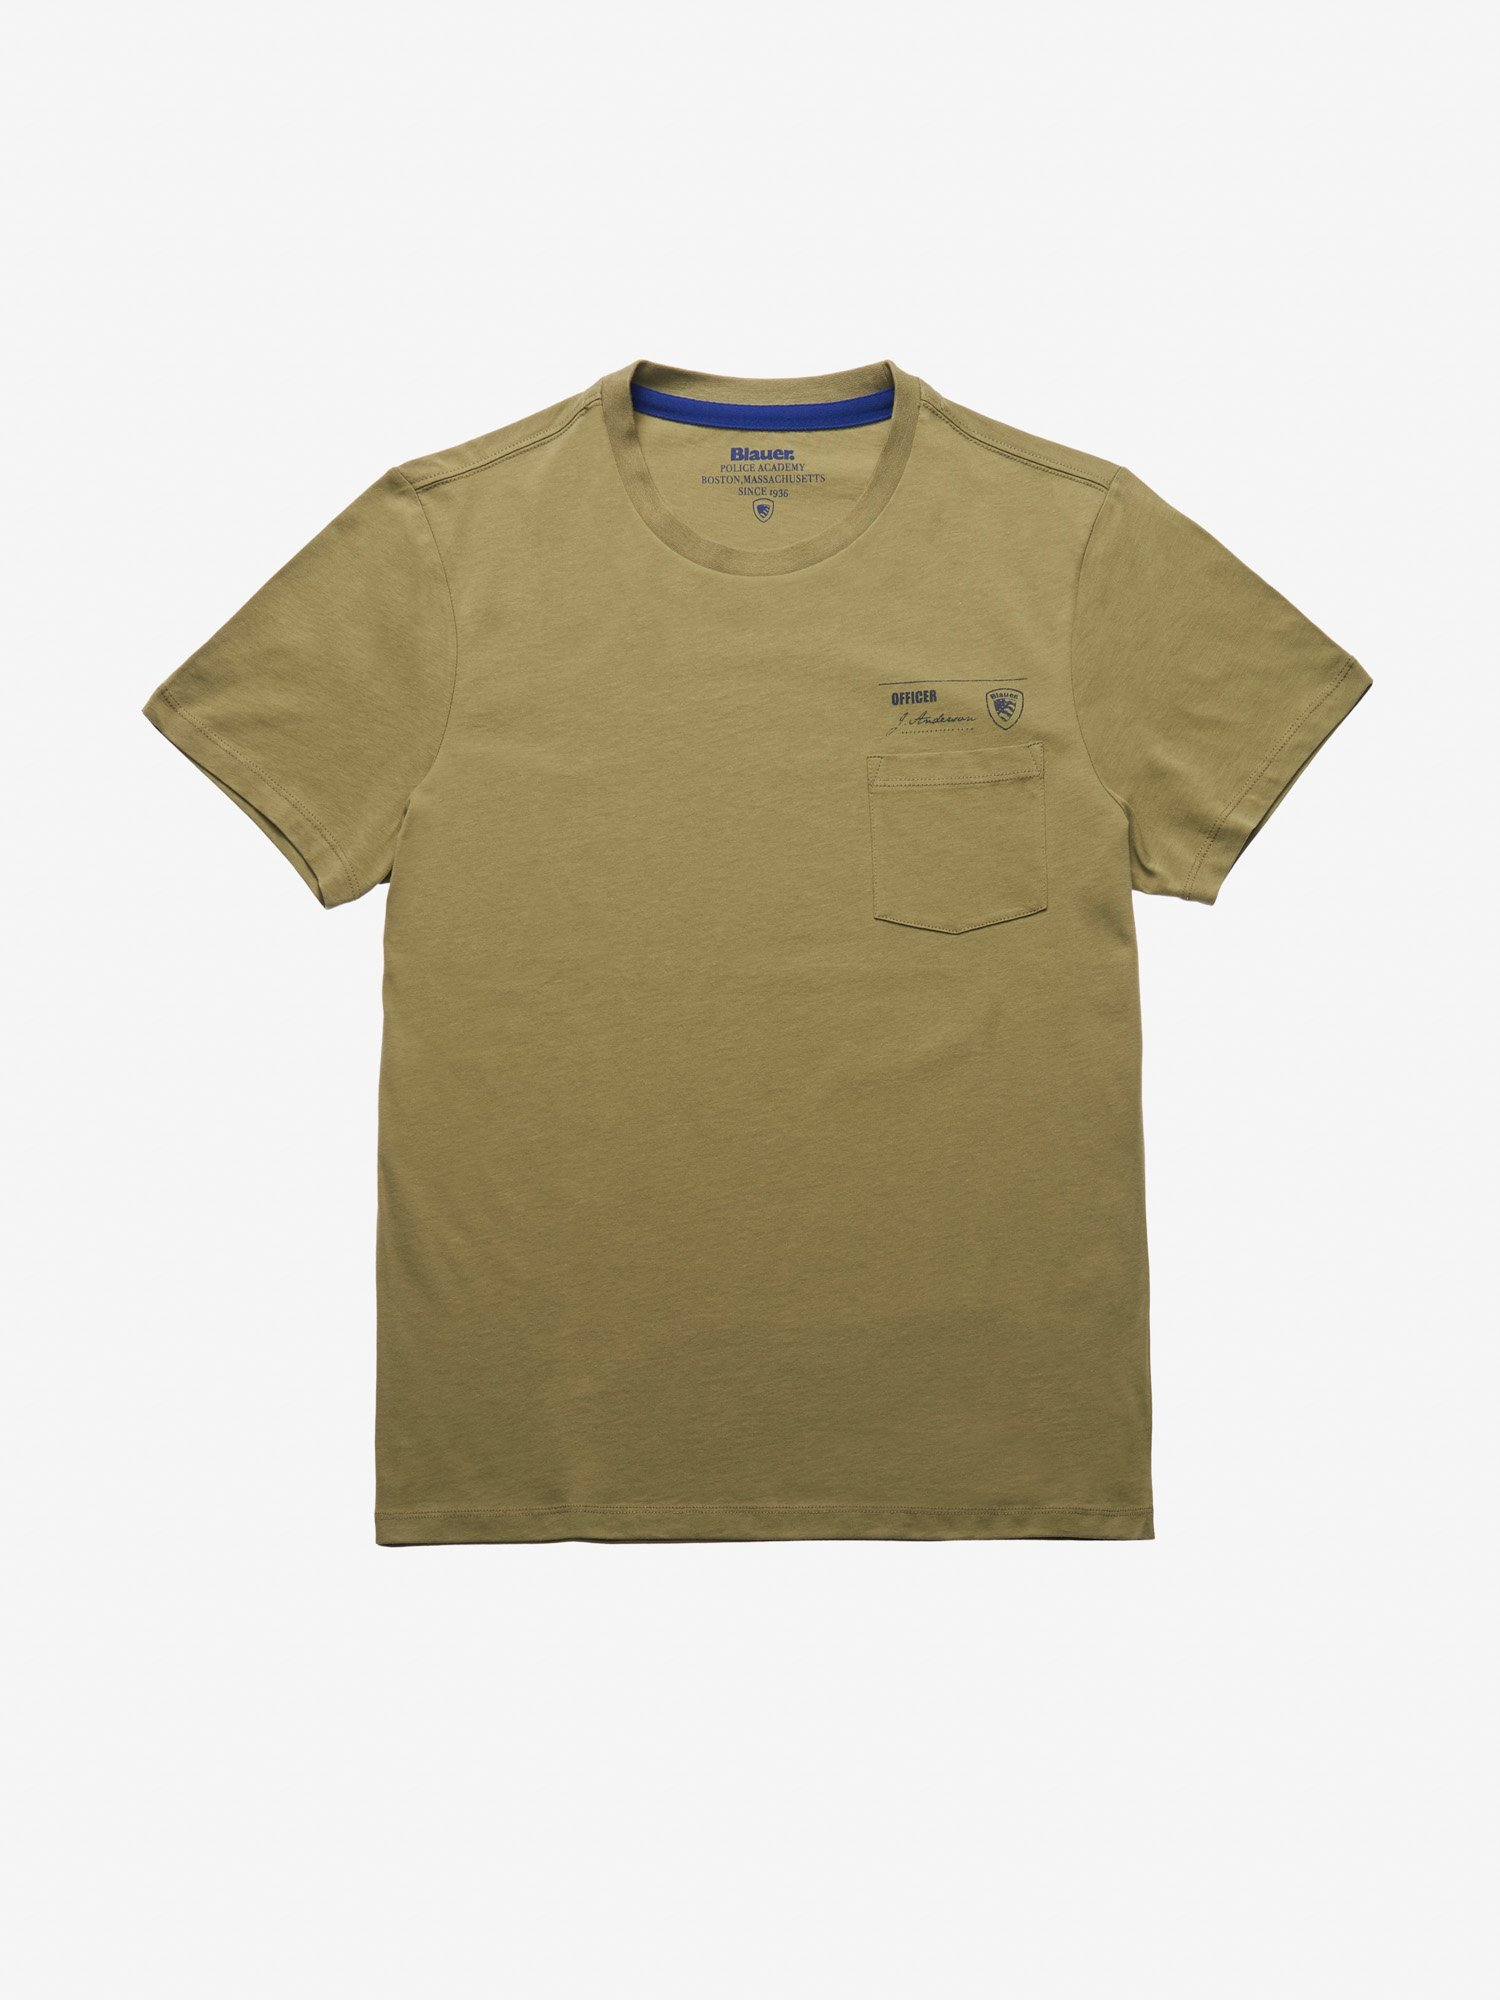 4b3cf00bb7e2 Blauer - MEN S POCKET T-SHIRT - Dusty Green - 1 ...